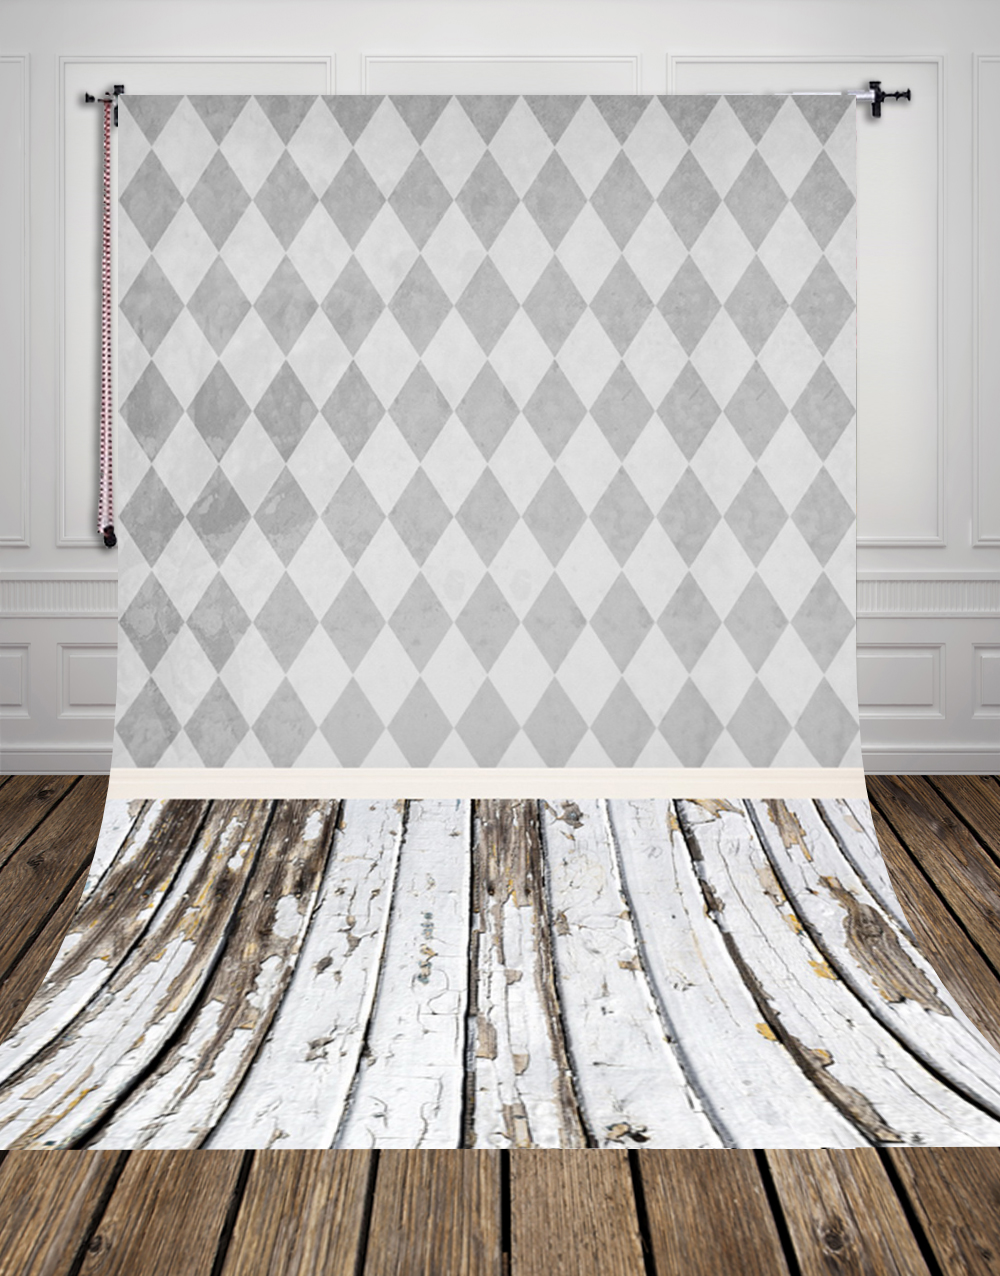 5x10ft(1.5x3m) Seamless quadrilateral wall paper with wood floor photo studio background backdrop made of thin vinyl D-9693